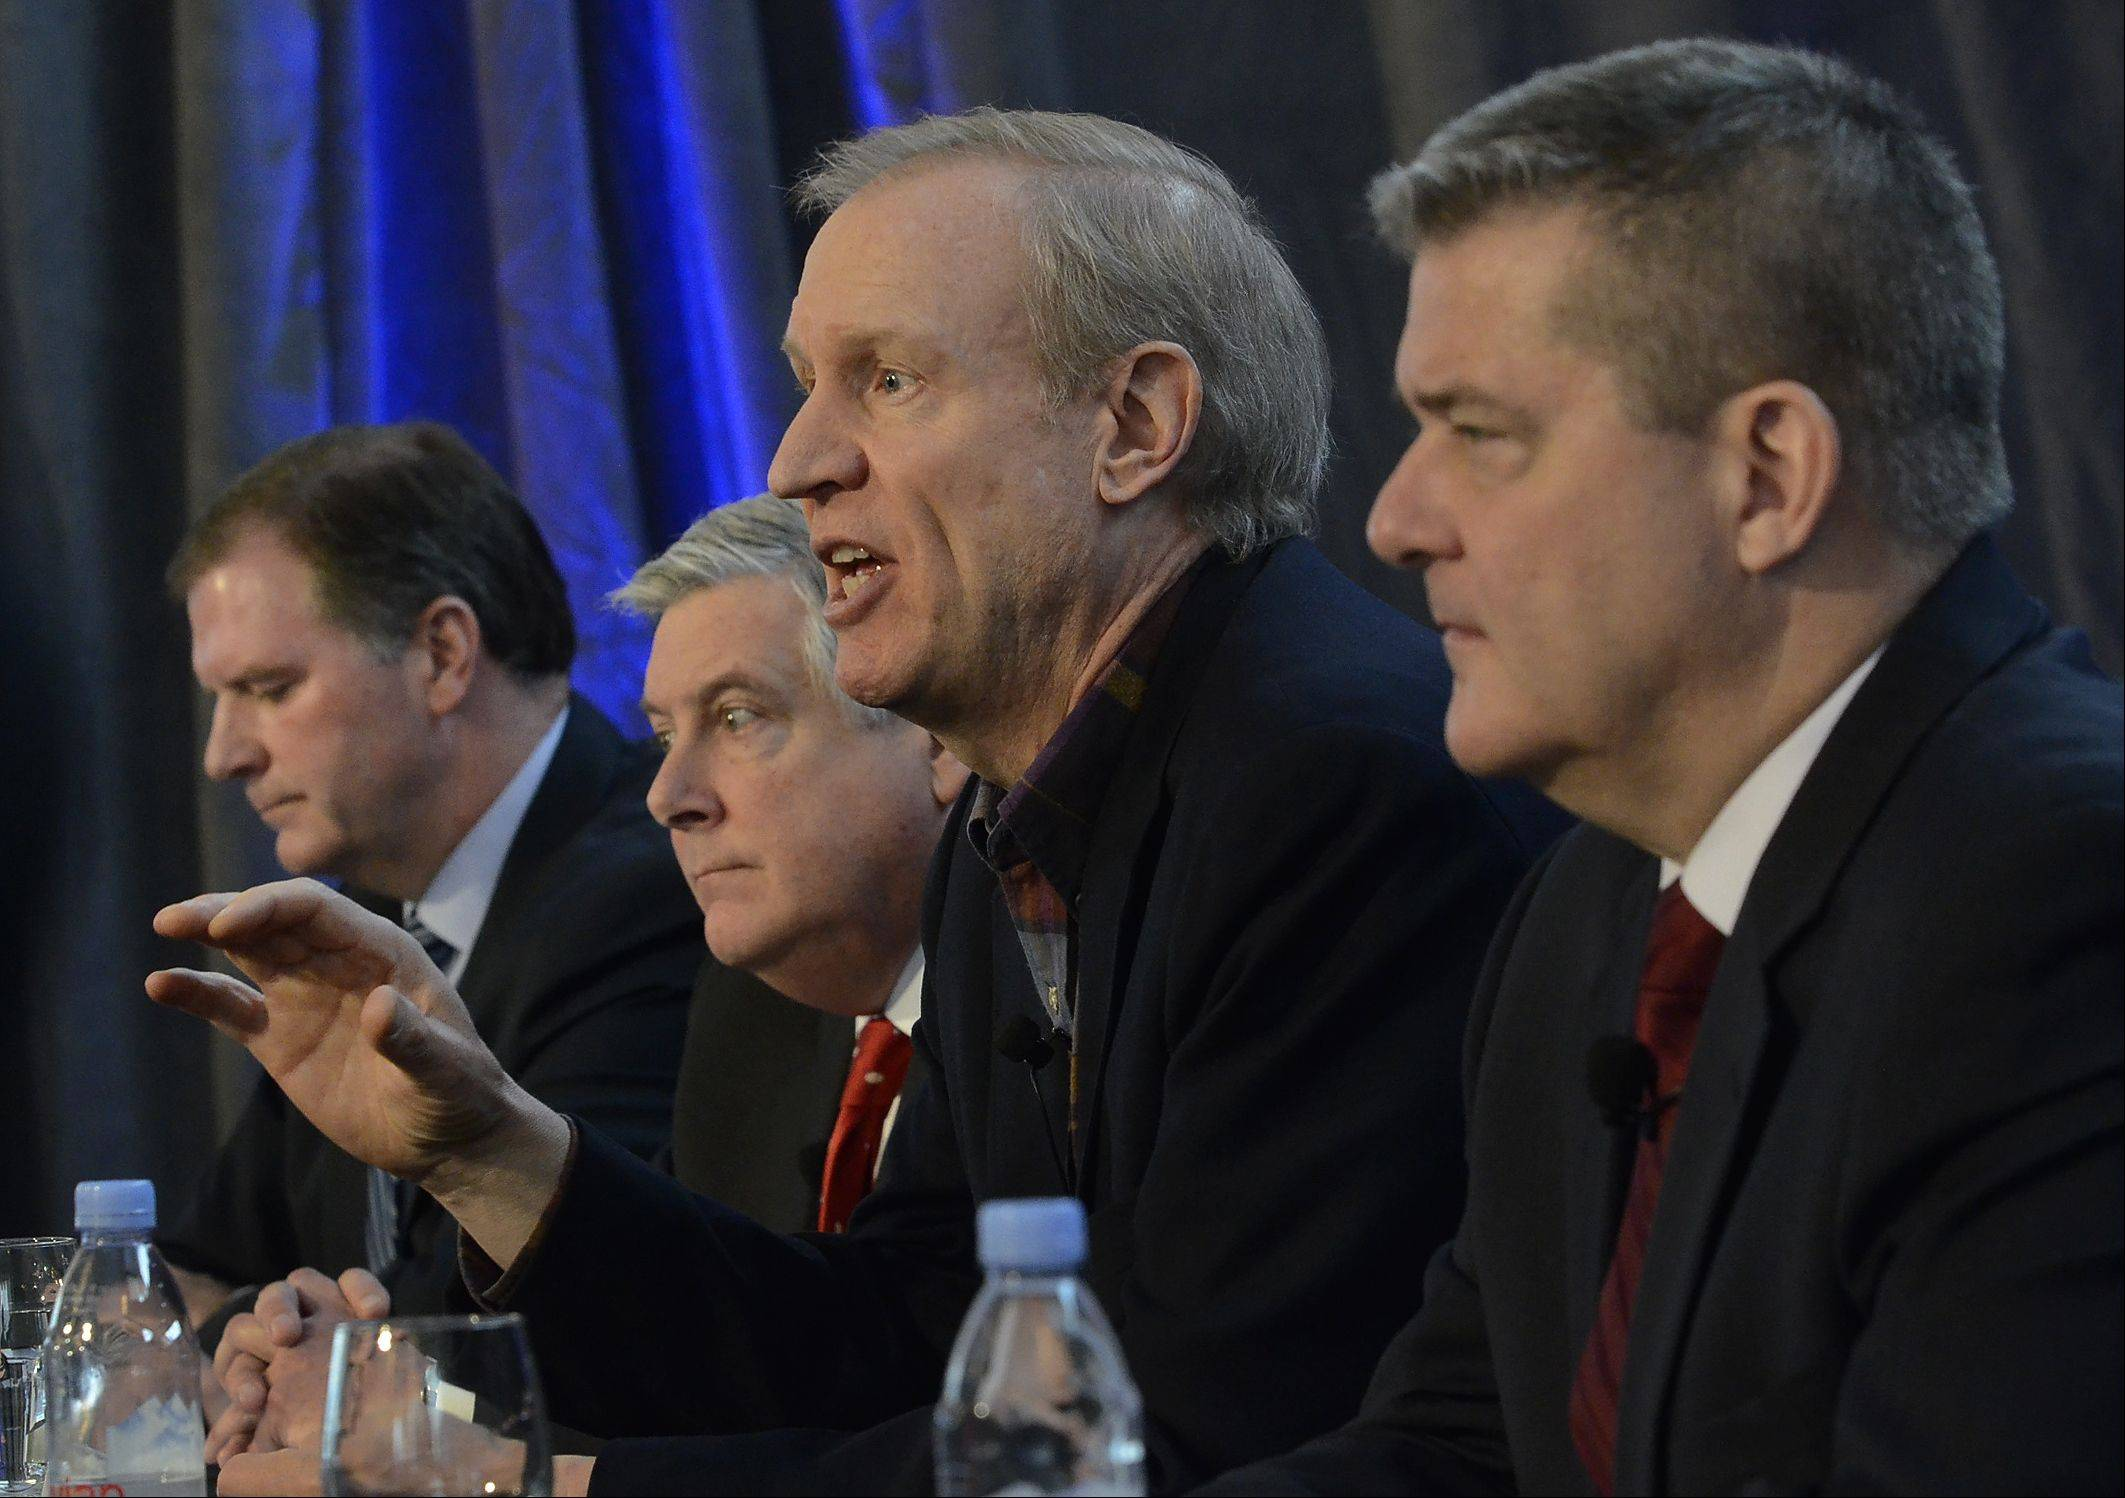 Benedictine University has invited the four Republican candidates for governor -- state Sen. Bill Brady, from left, state Sen. Kirk Dillard, Bruce Rauner and Illinois Treasurer Dan Rutherford -- to debate on campus March 6.